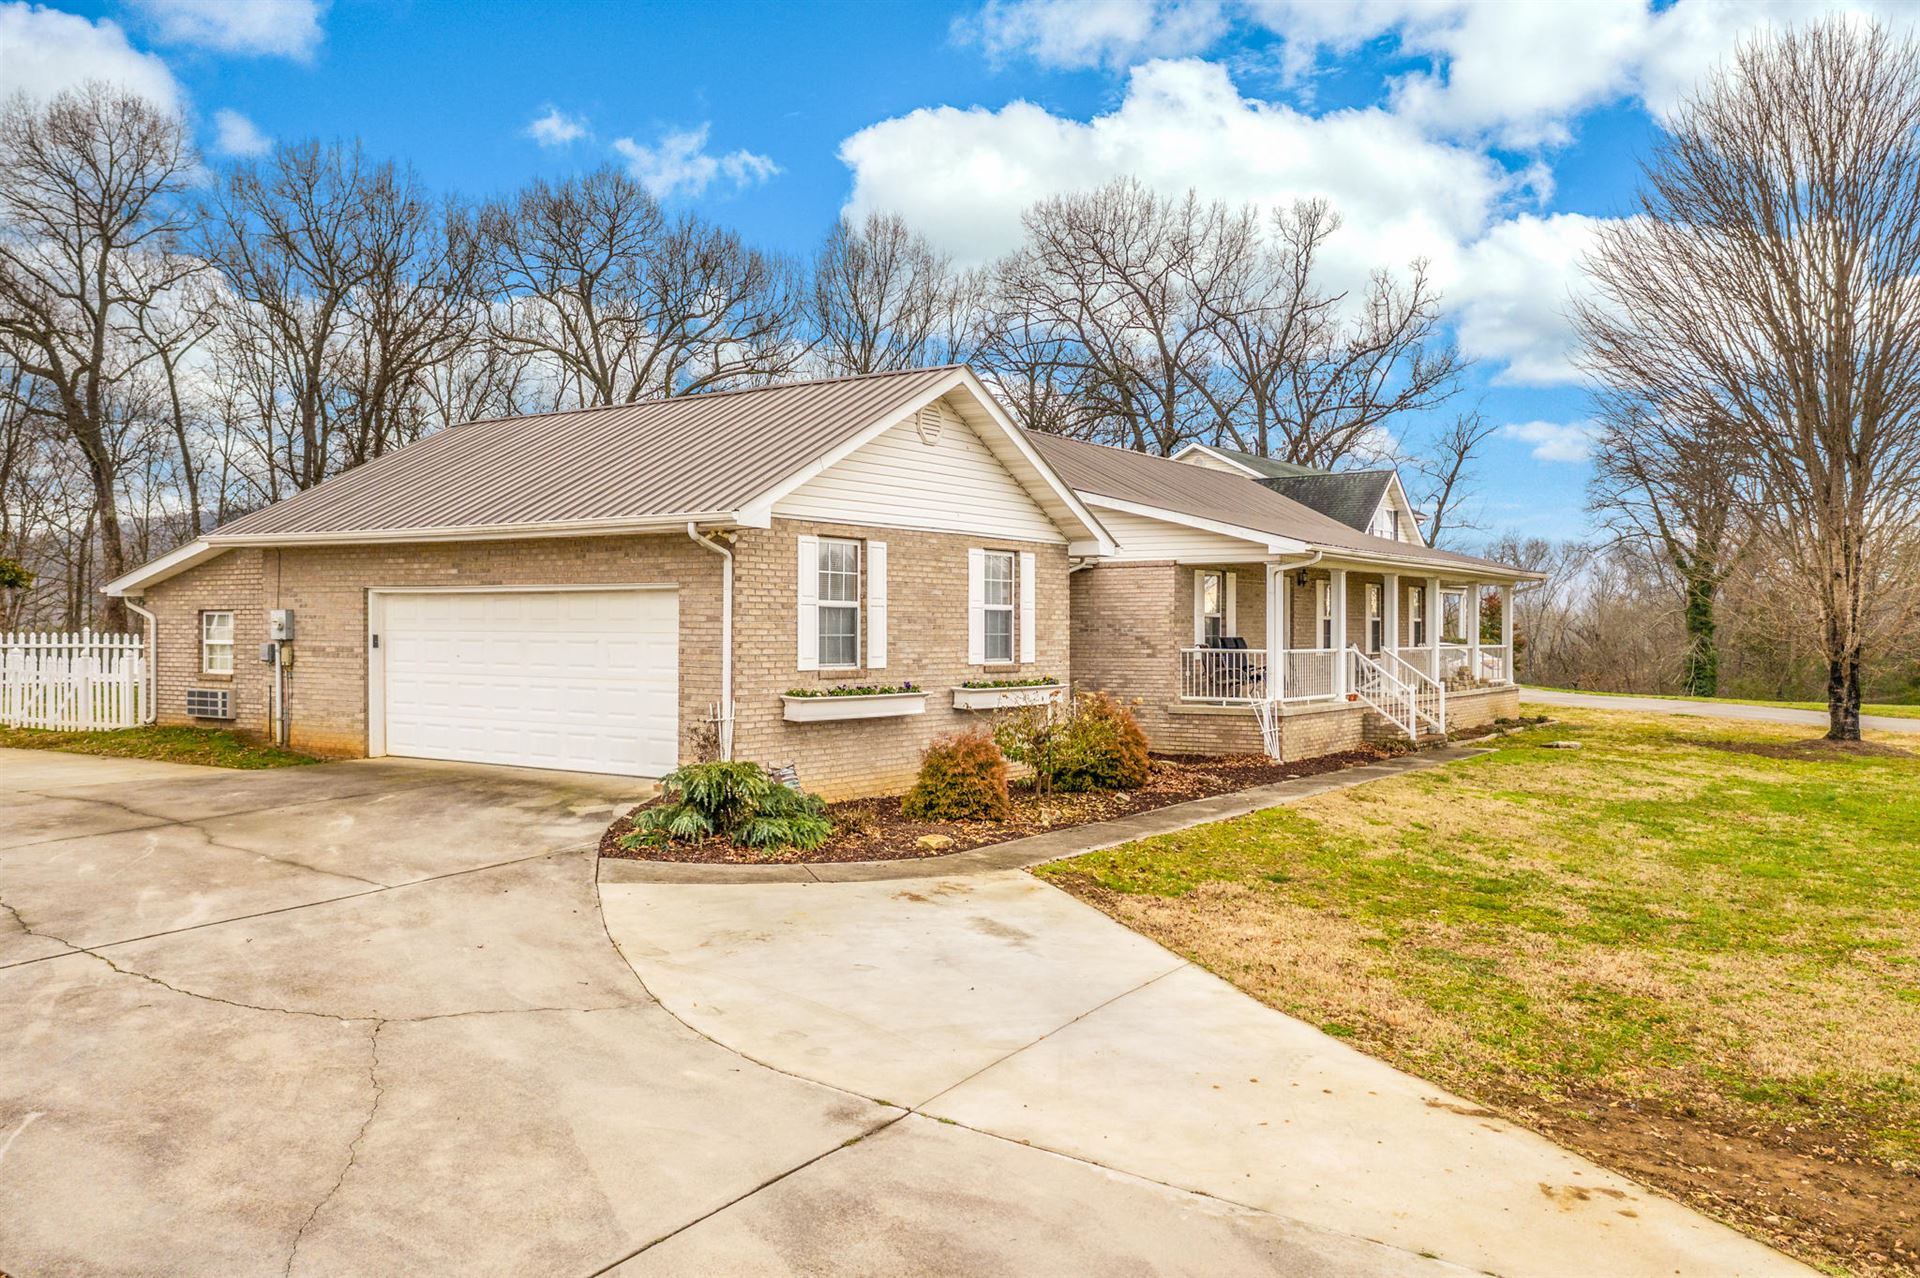 Photo of 975 Boardly Hills Blvd, Sevierville, TN 37876 (MLS # 1140152)